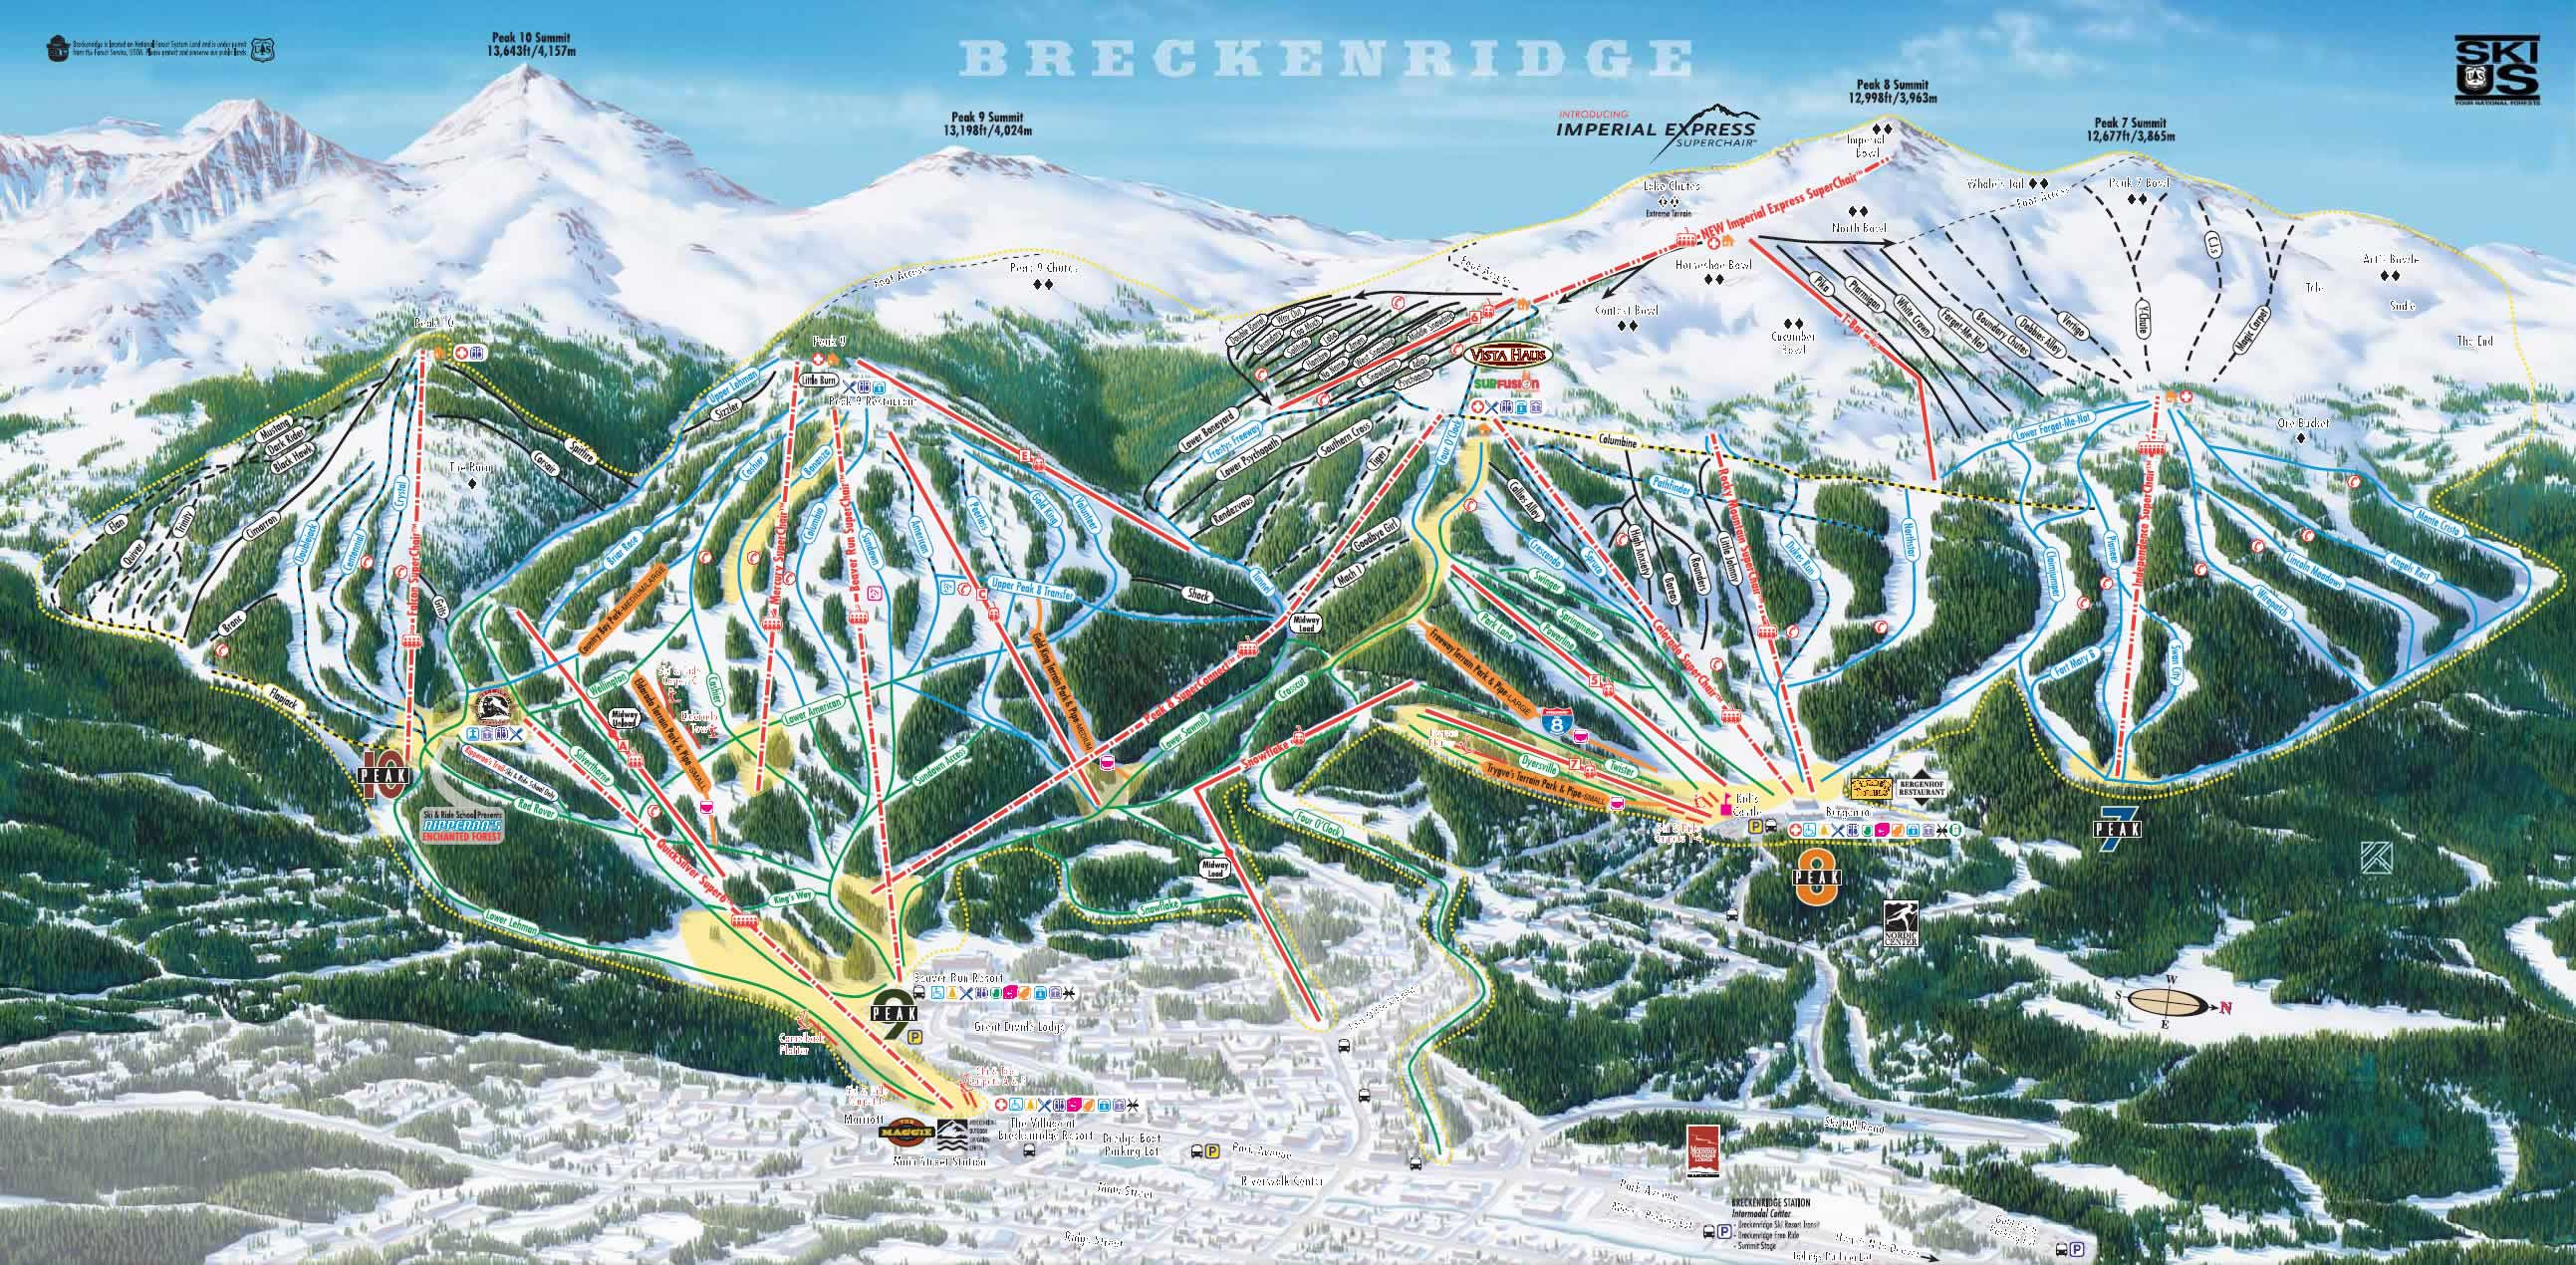 breckenridge ski area trail map 2 2